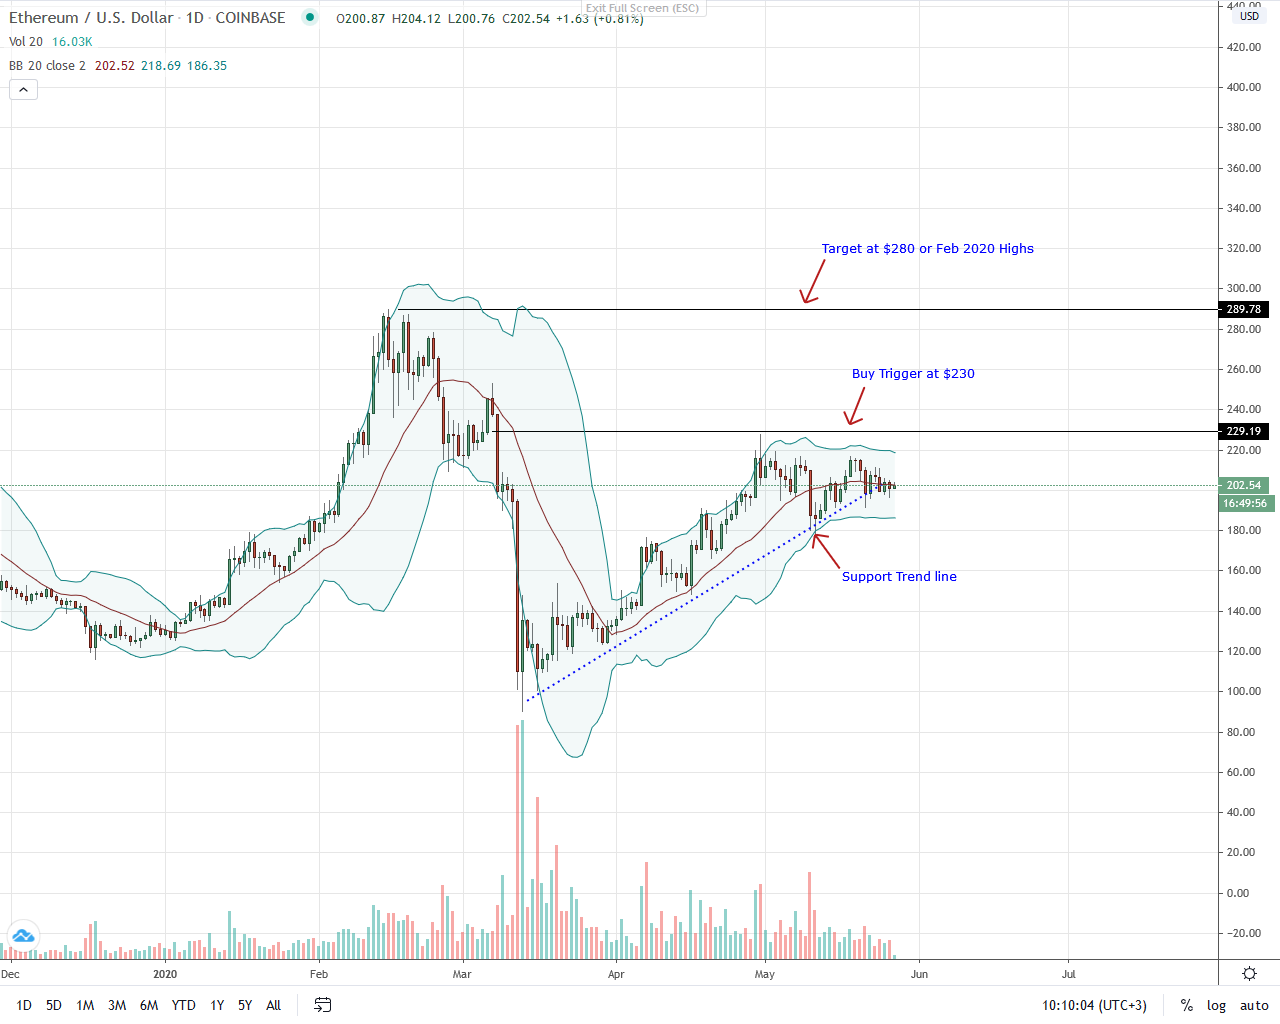 Ethereum Daily Chart for May 27